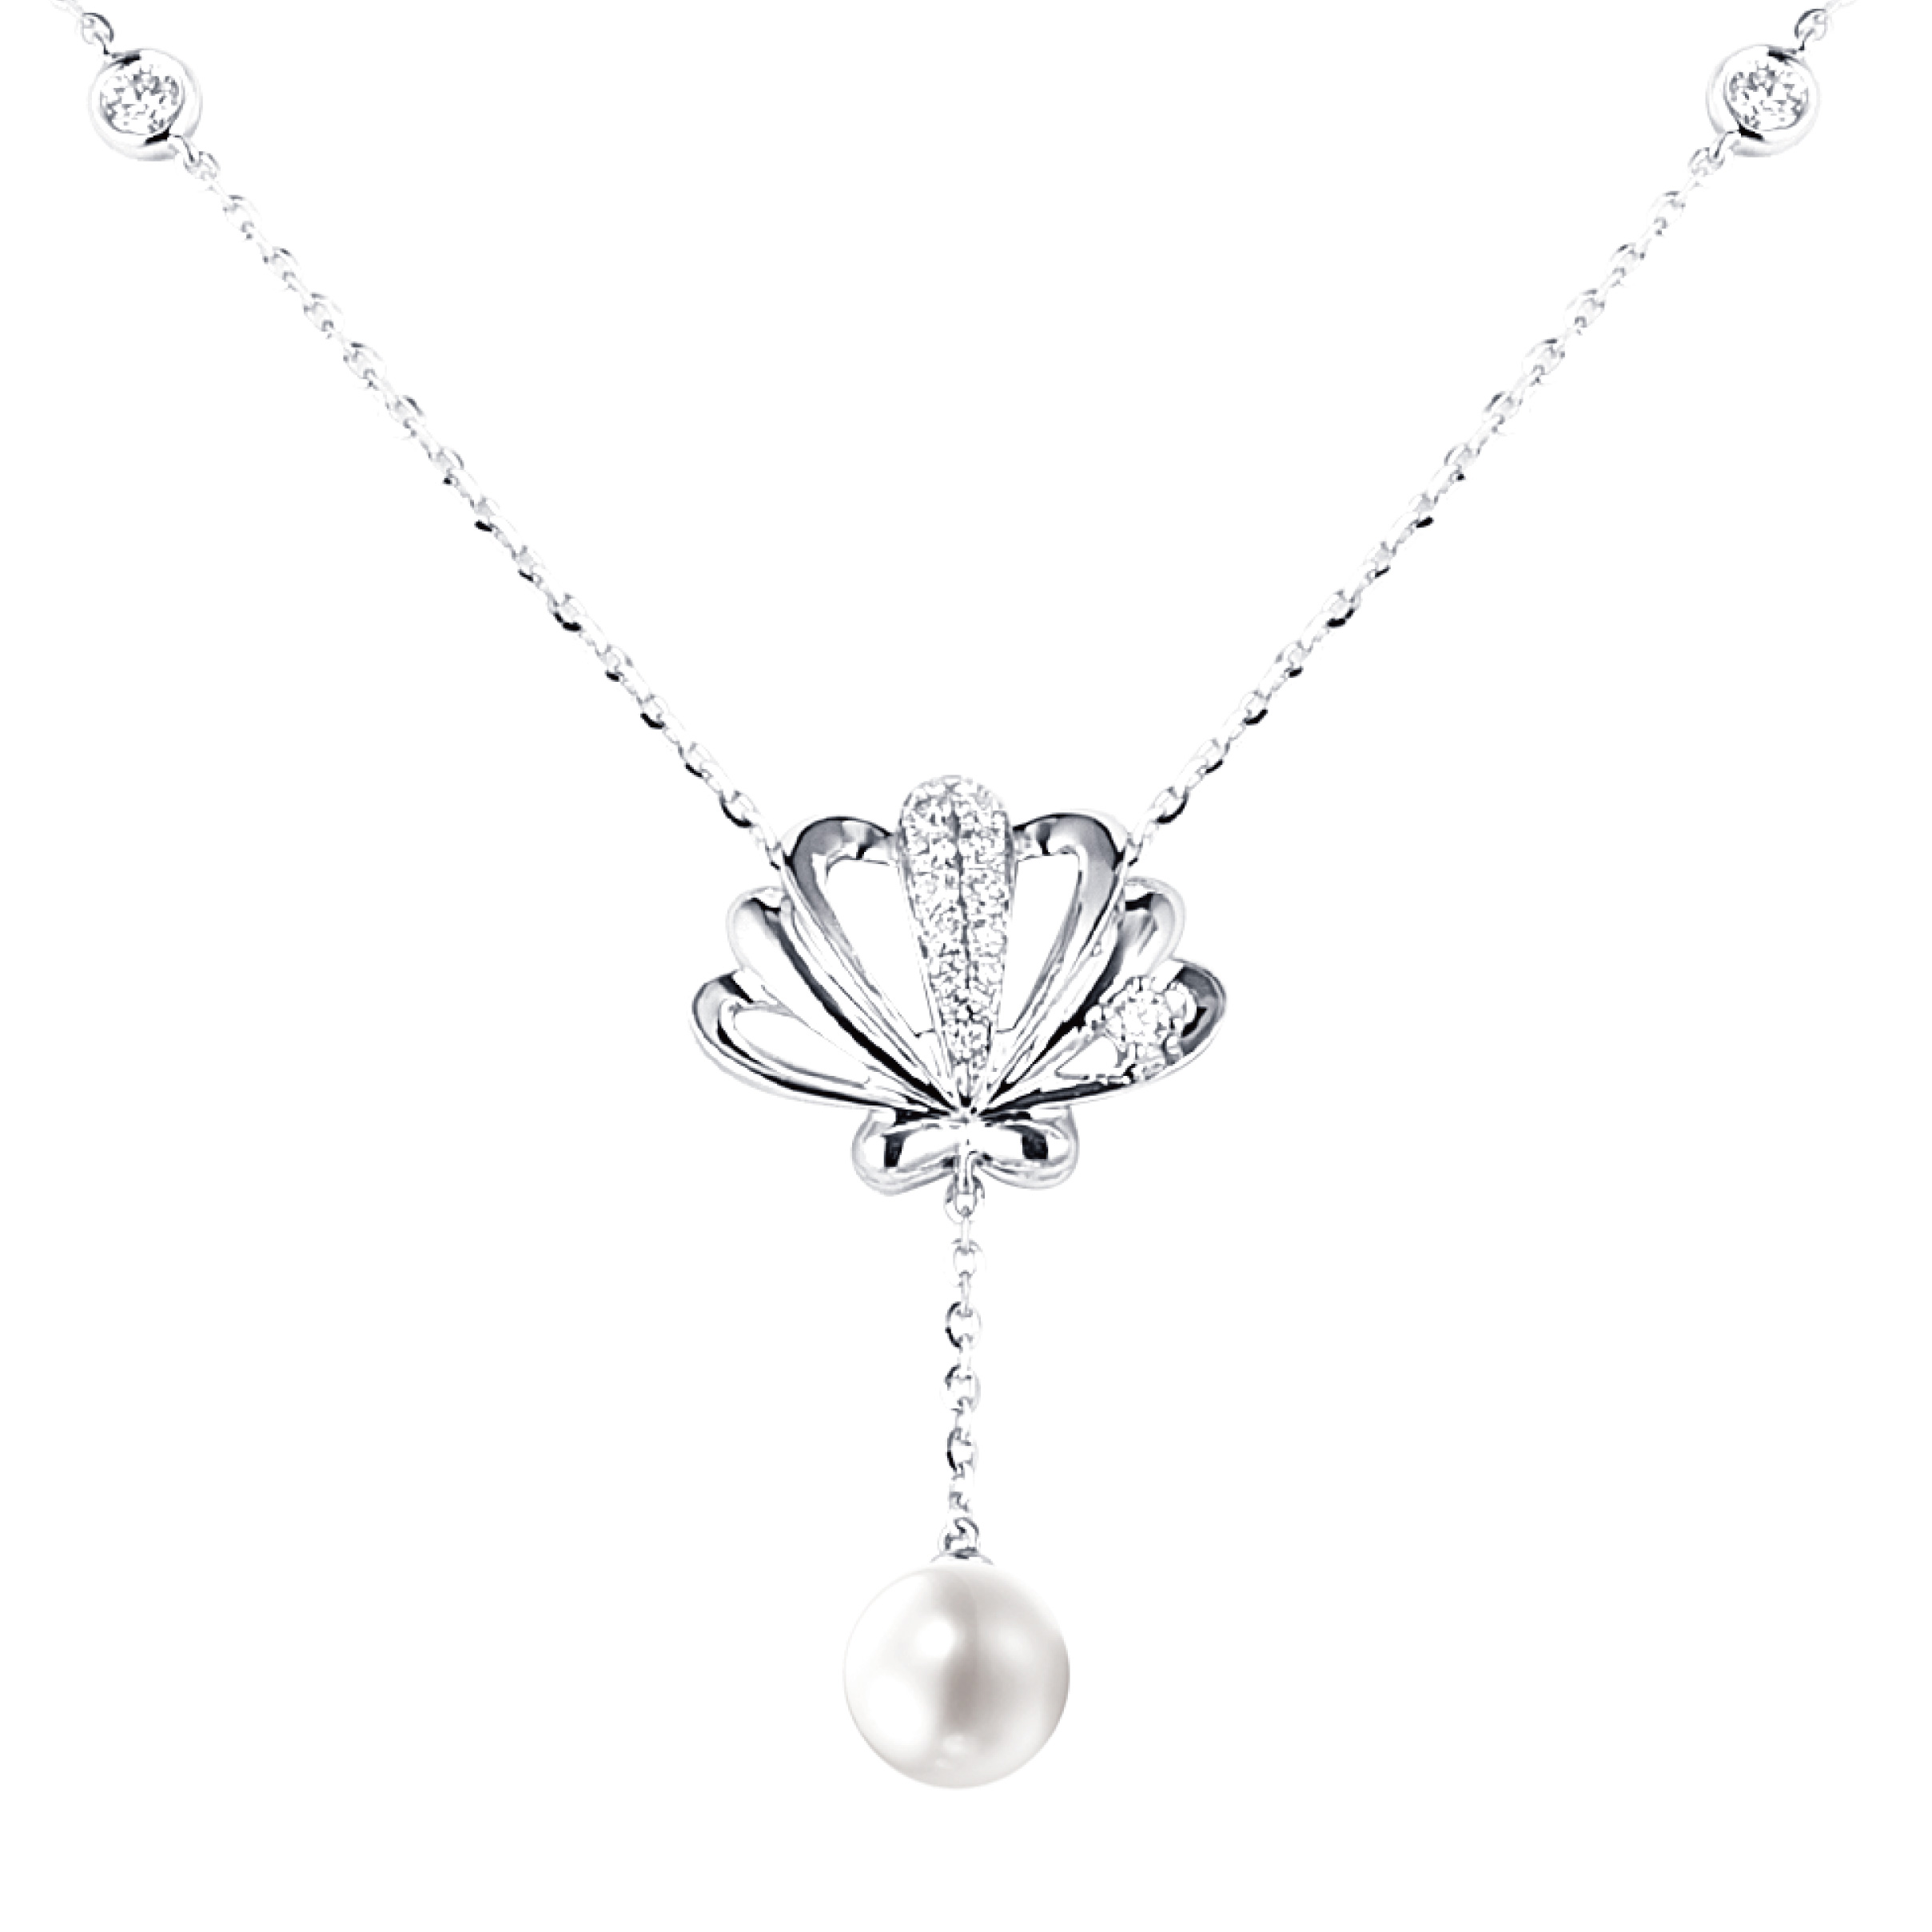 Dear Q Seashell with Pearl Necklace